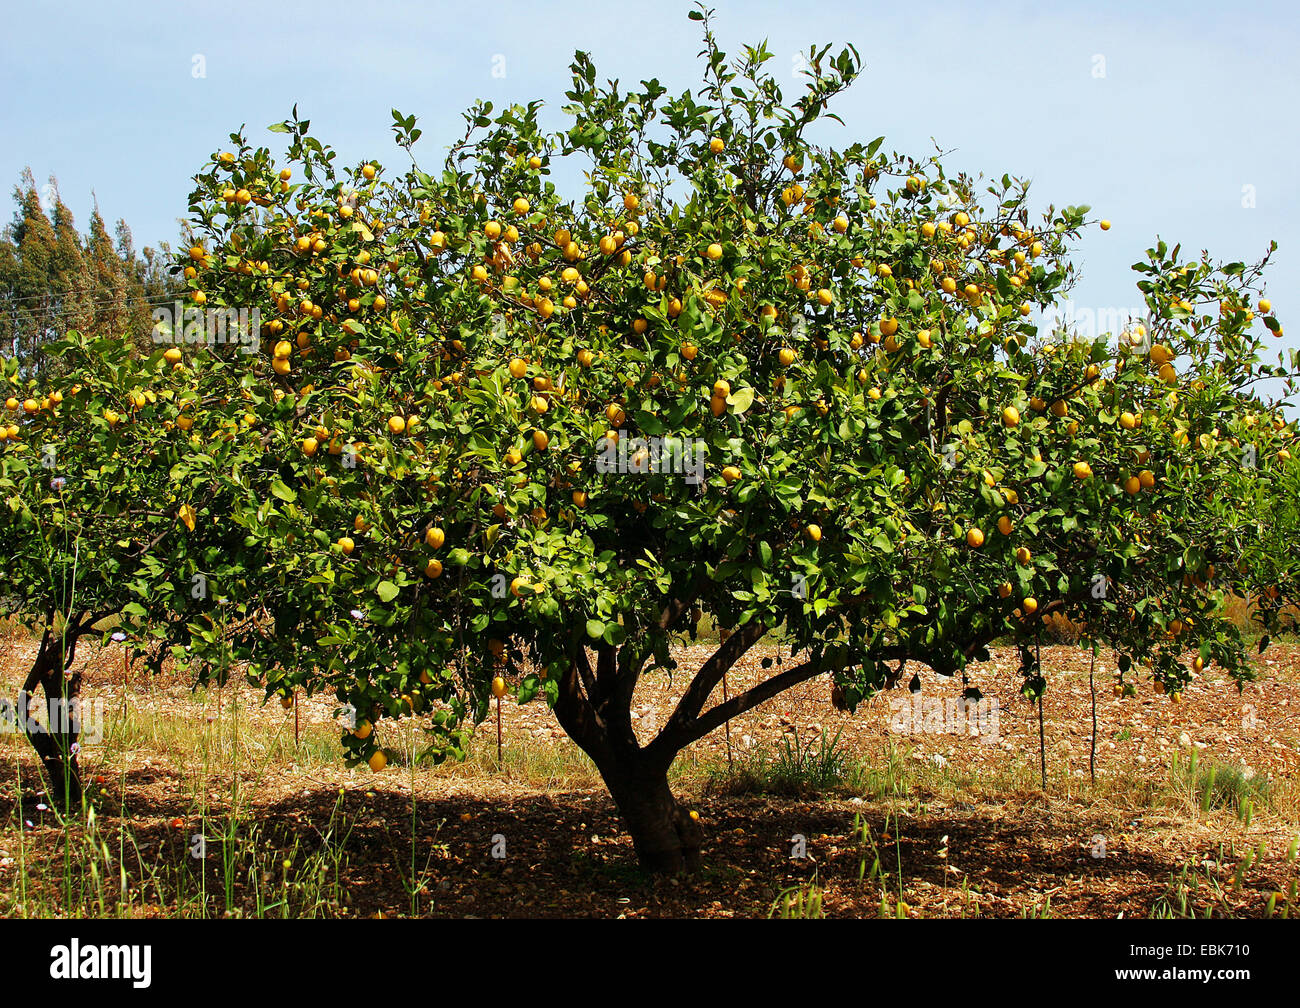 Tree With Fruits Part - 22: Lemon Tree (Citrus Limon), Tree With Fruits